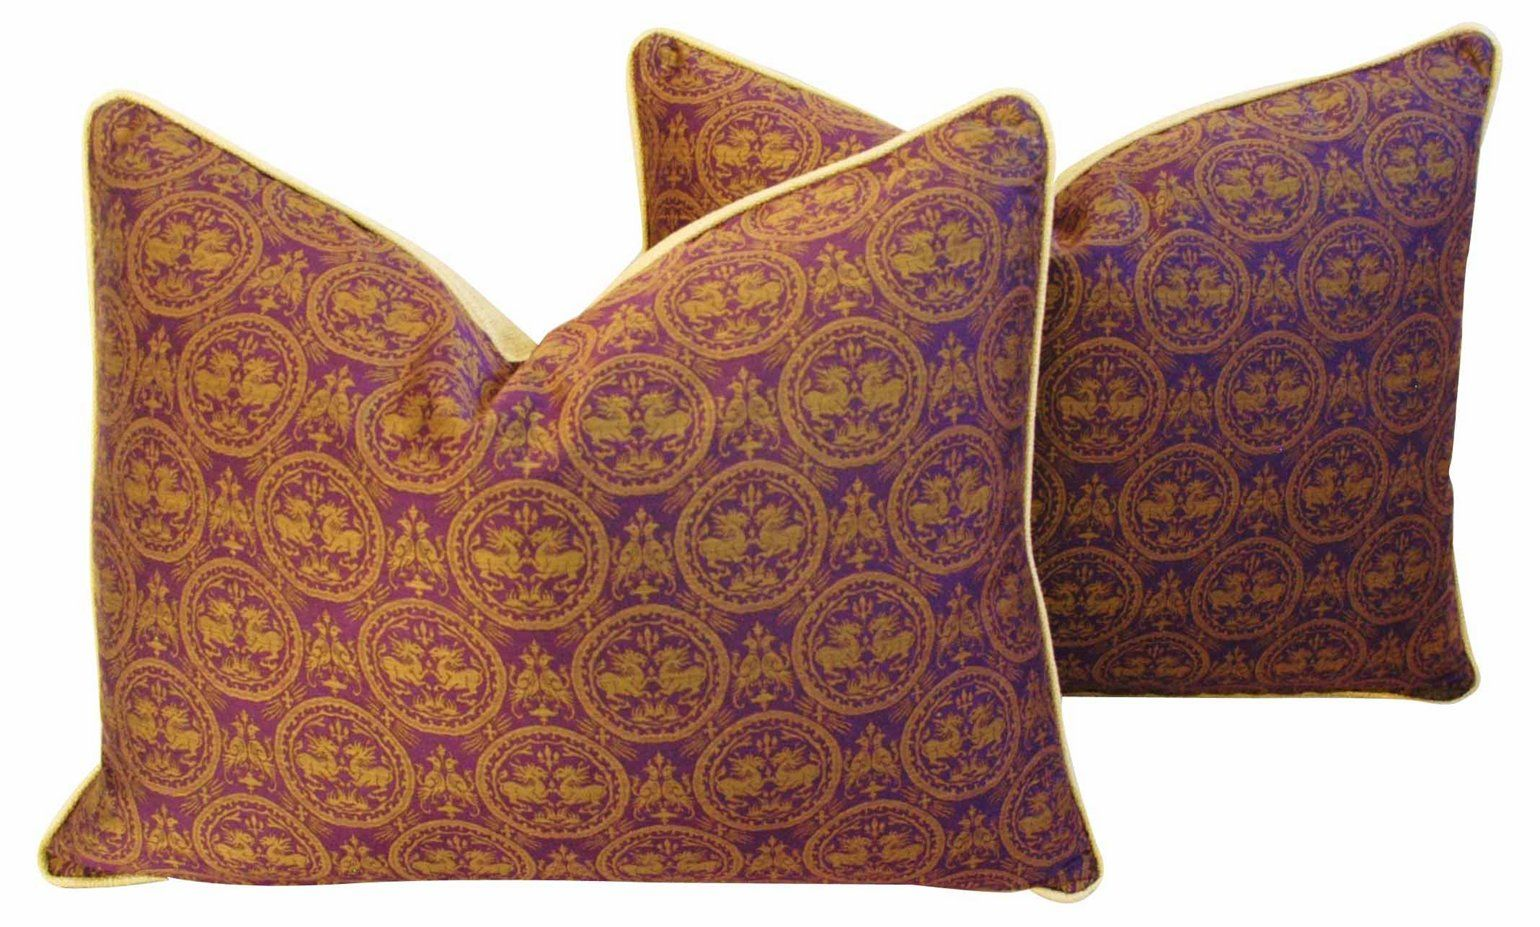 Pierre Frey Royal Medallion Pillows, Pr - Mike Seratt - Top Vintage Dealers - Vintage  One Kings Lane #Medallion#Pillows#Pr